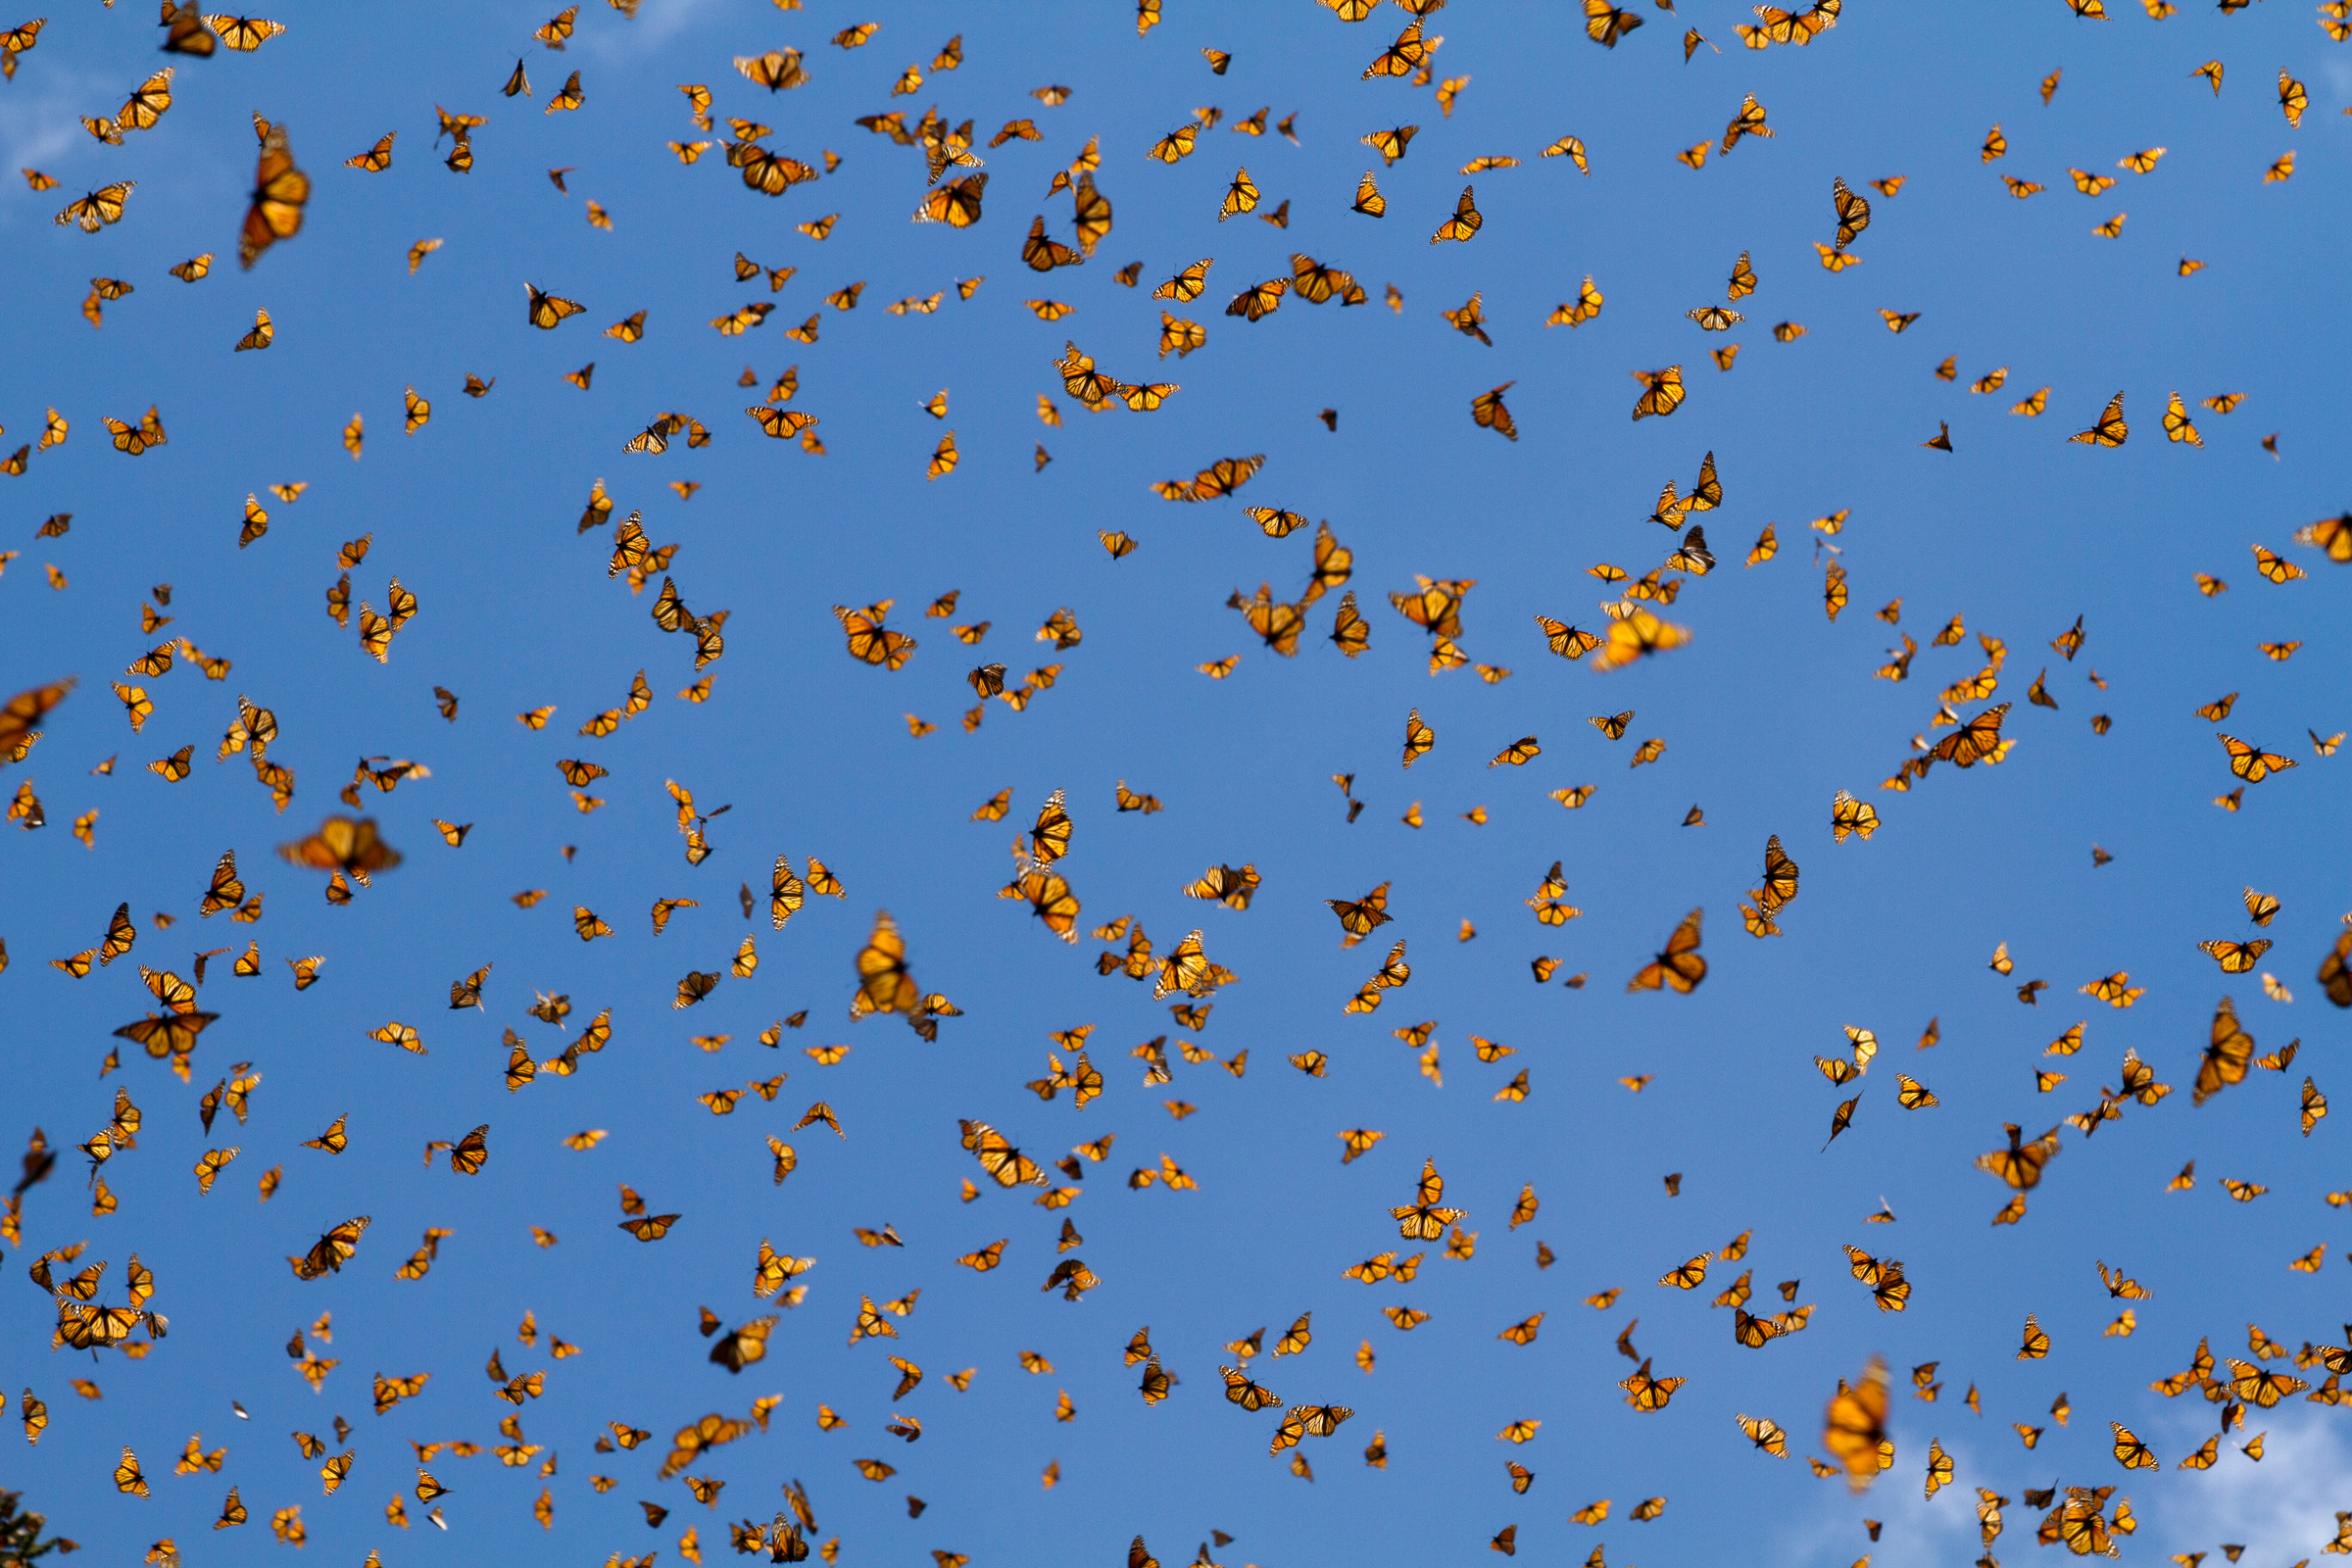 Monarch Butterflies at the Monarch Biosphere Reserve, Mexico